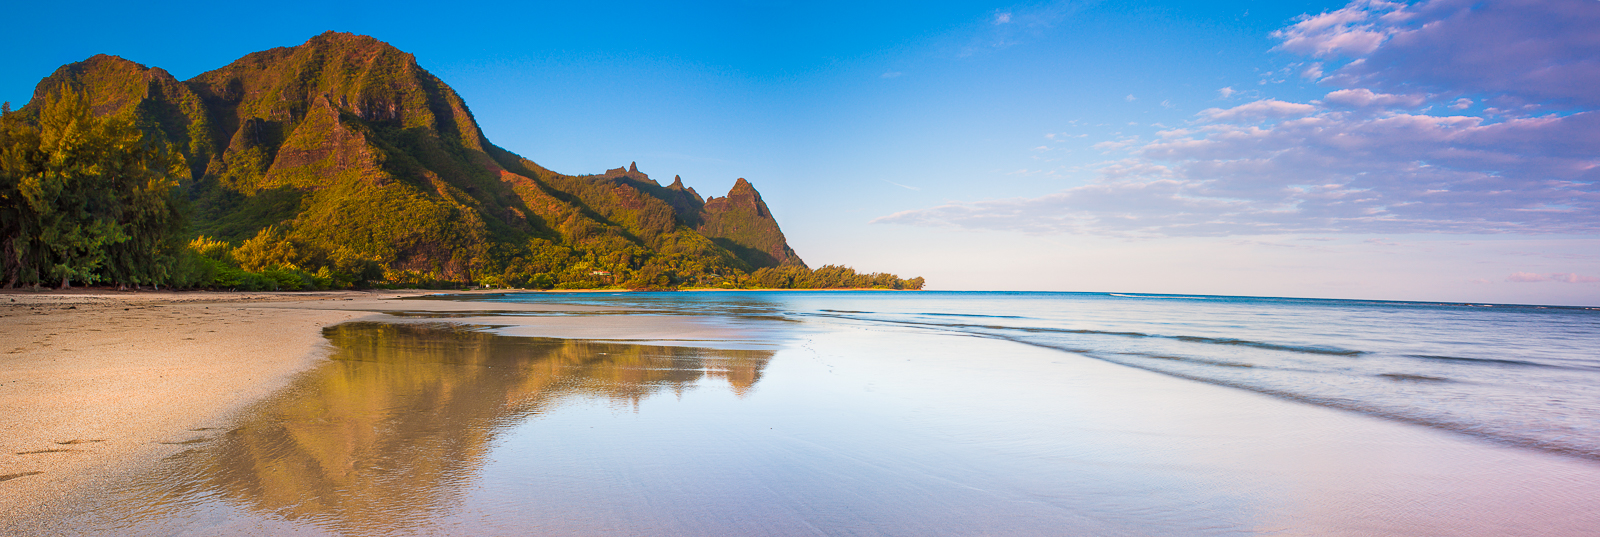 Waiting for Footprints,Kauai Island, Hawaii,Panoramic, water,horizontal, Reflection,Swim, photo